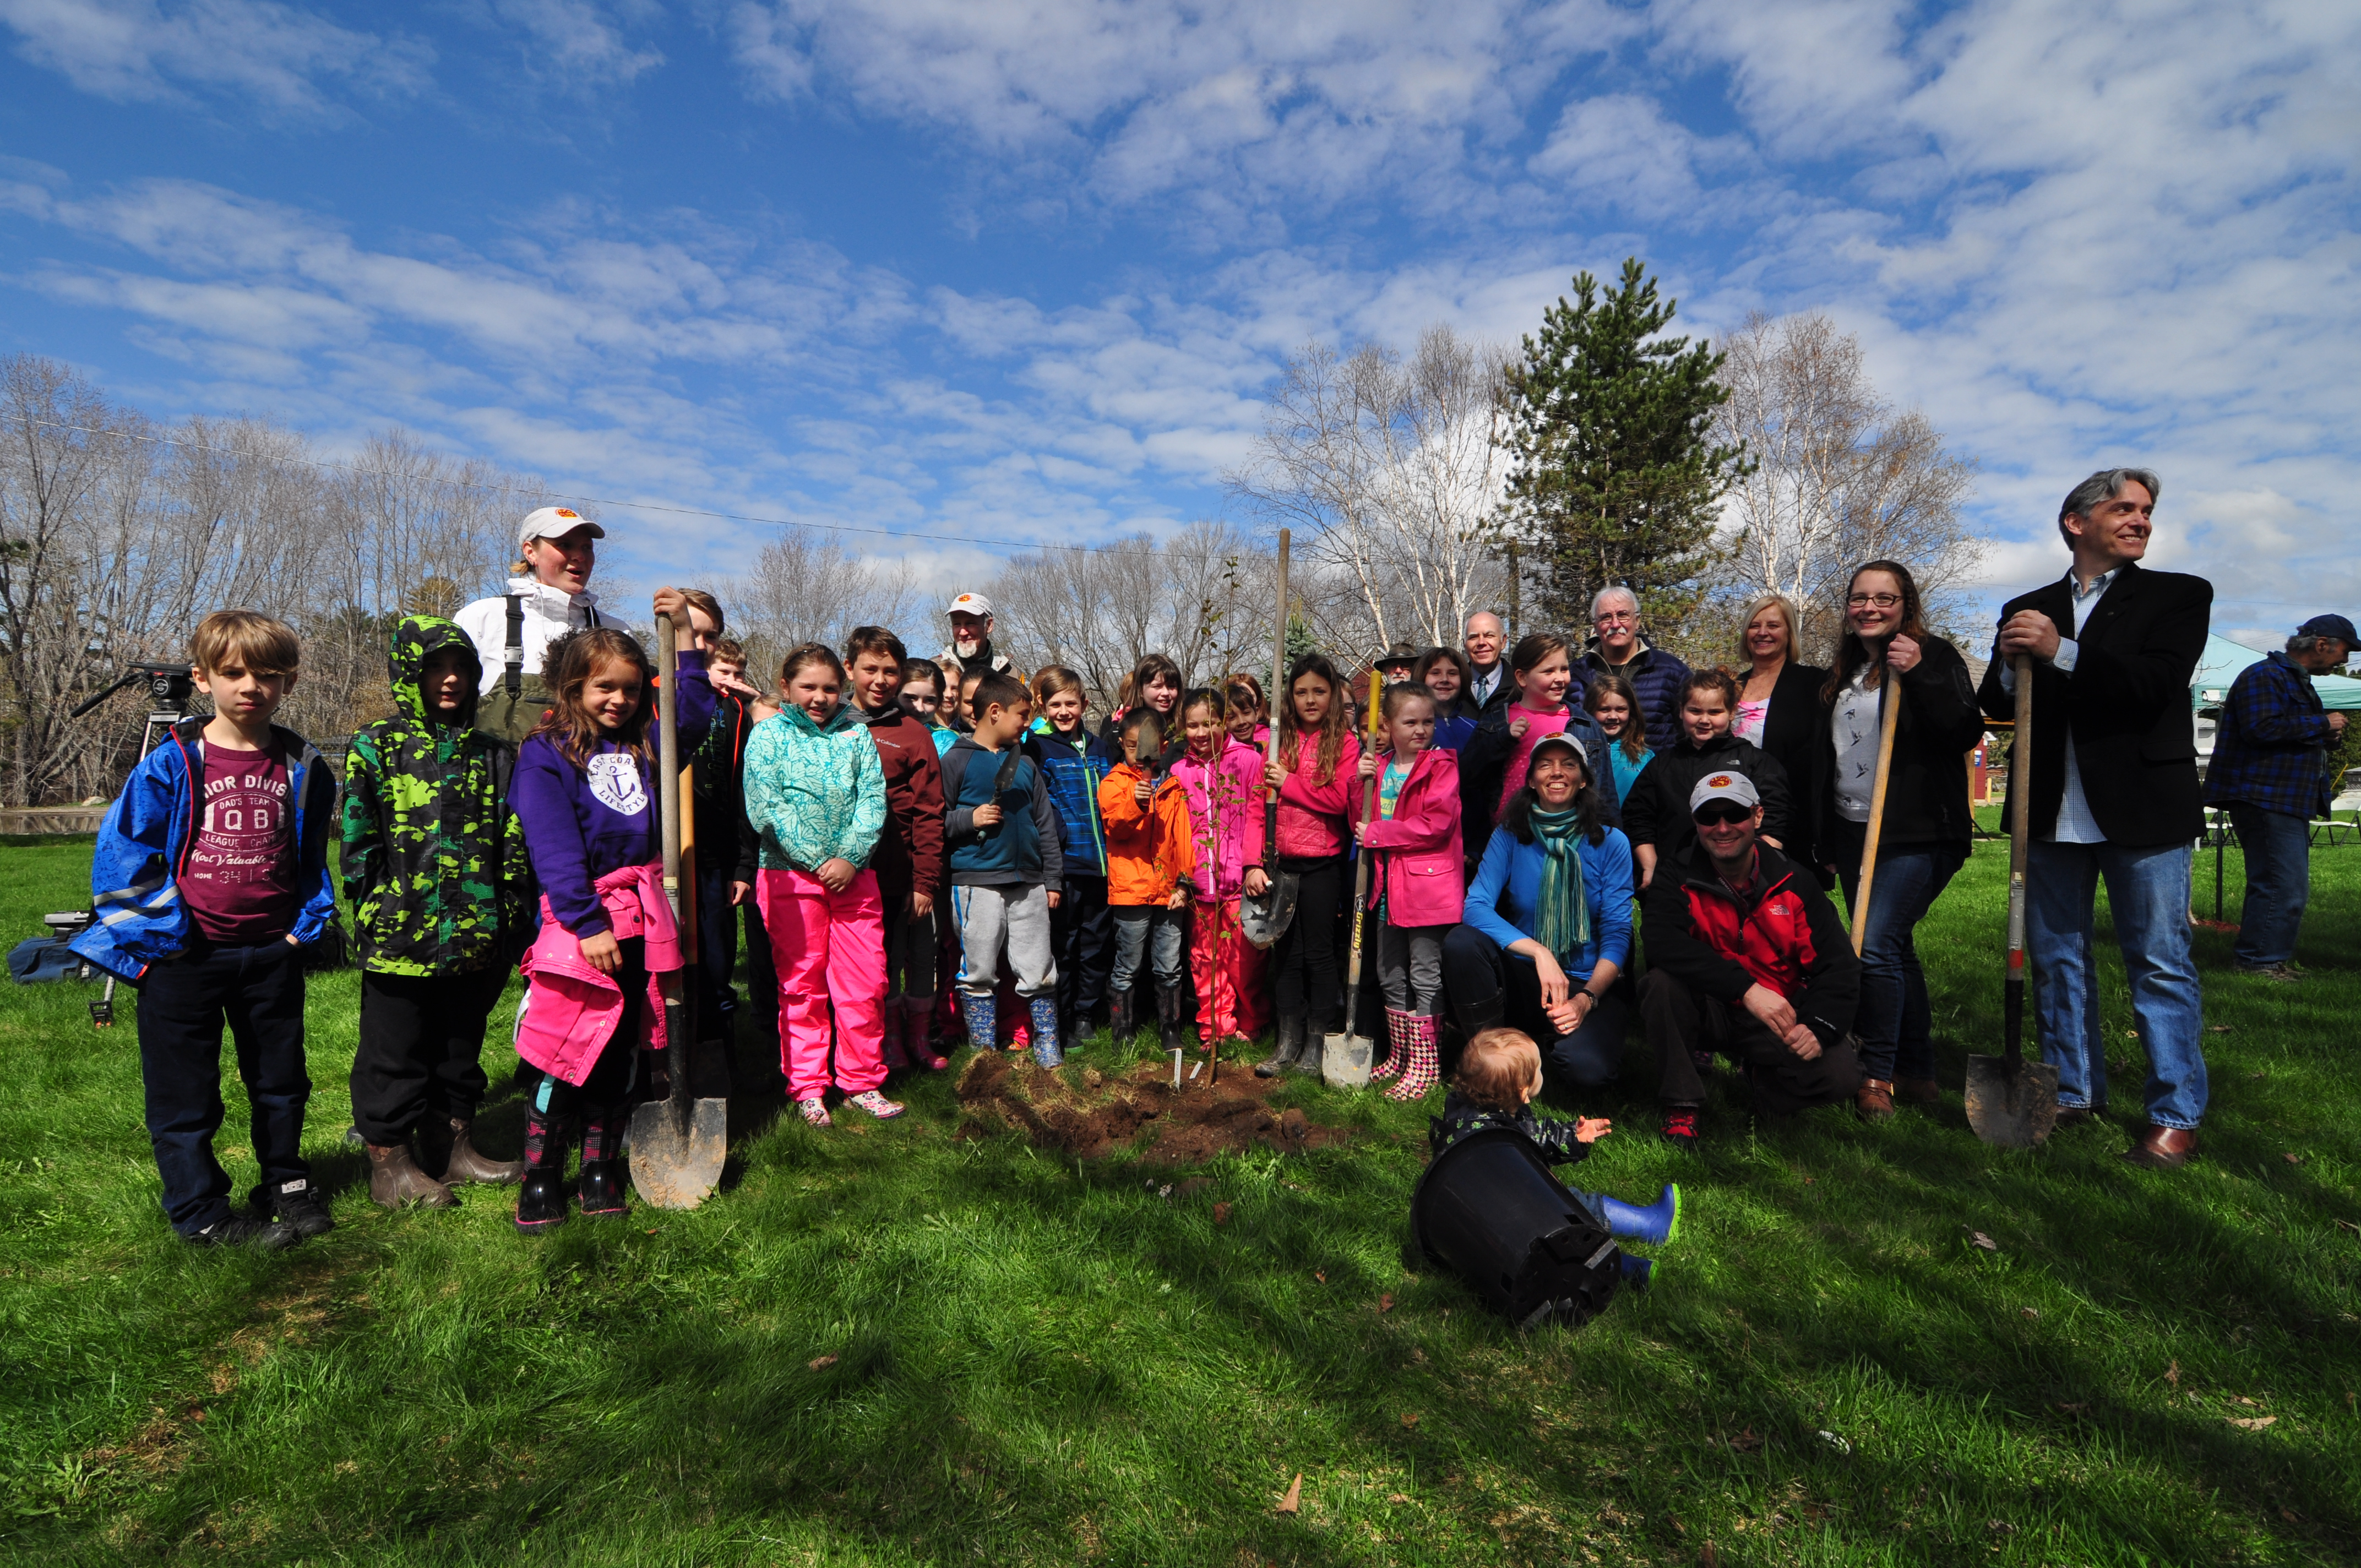 Nashwaak Valley School tree planting on the banks of the Nashwaak River